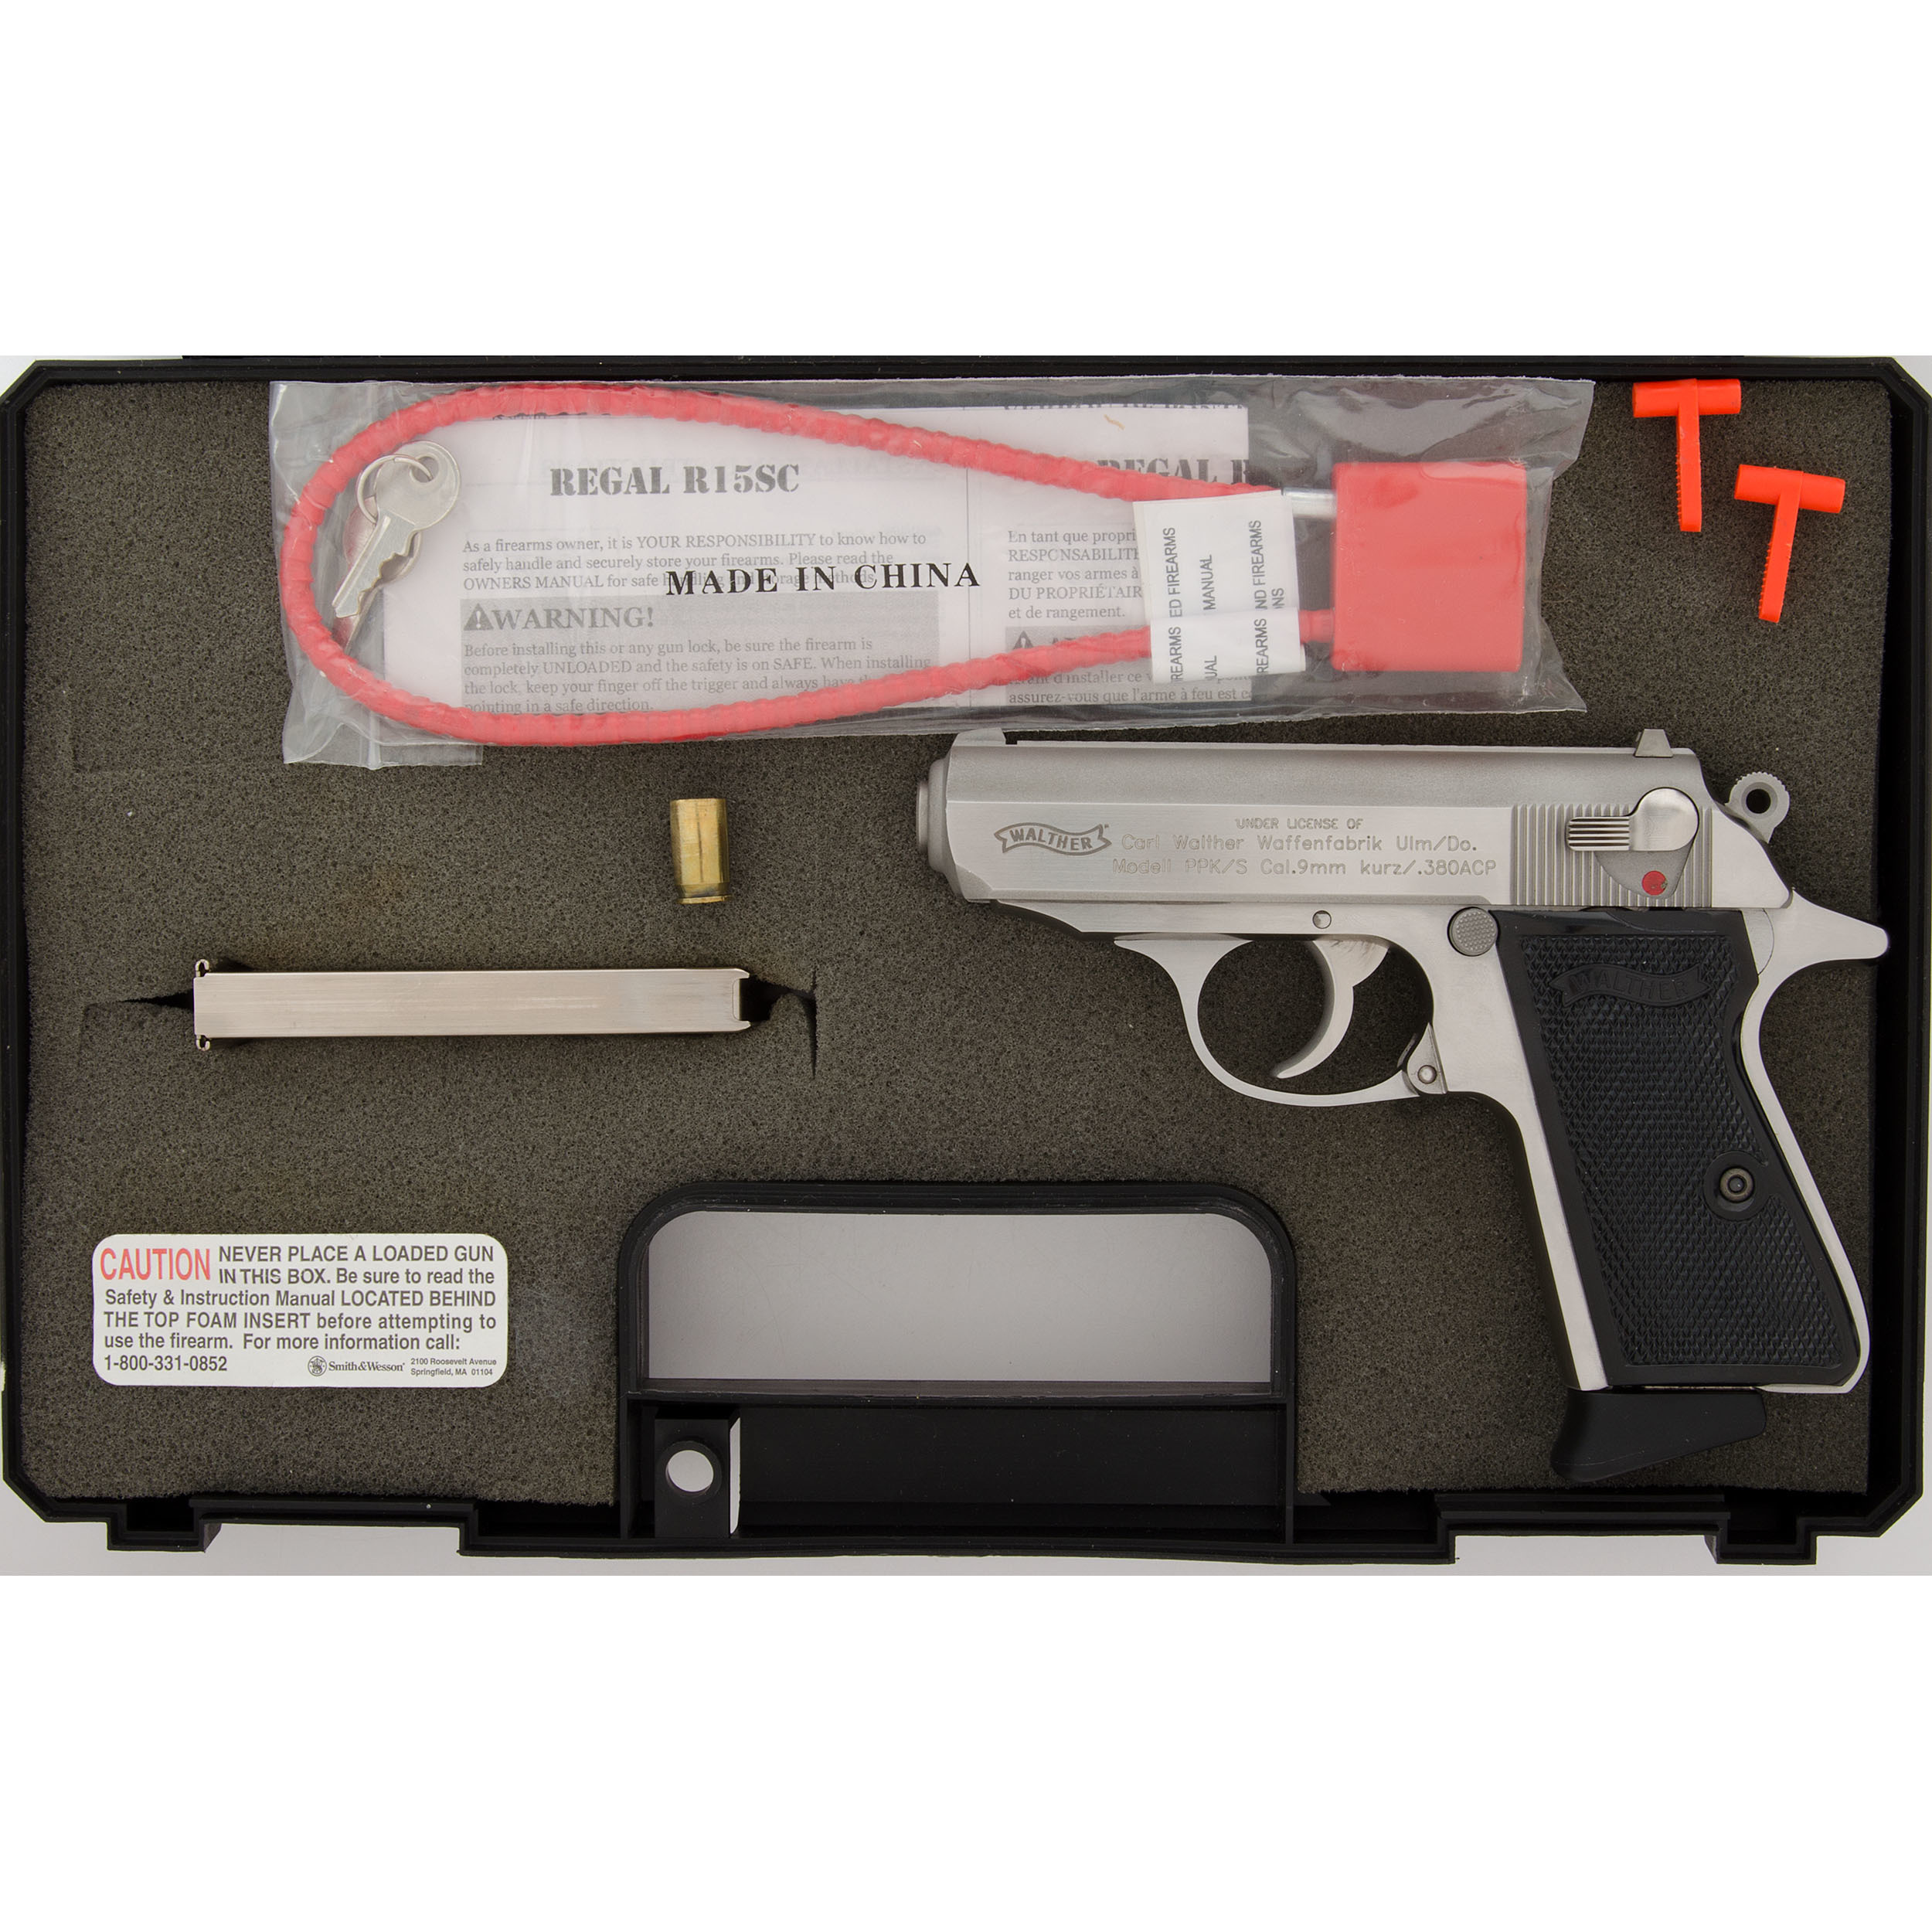 Walther PPKS-1 | Cowan's Auction House: The Midwest's Most